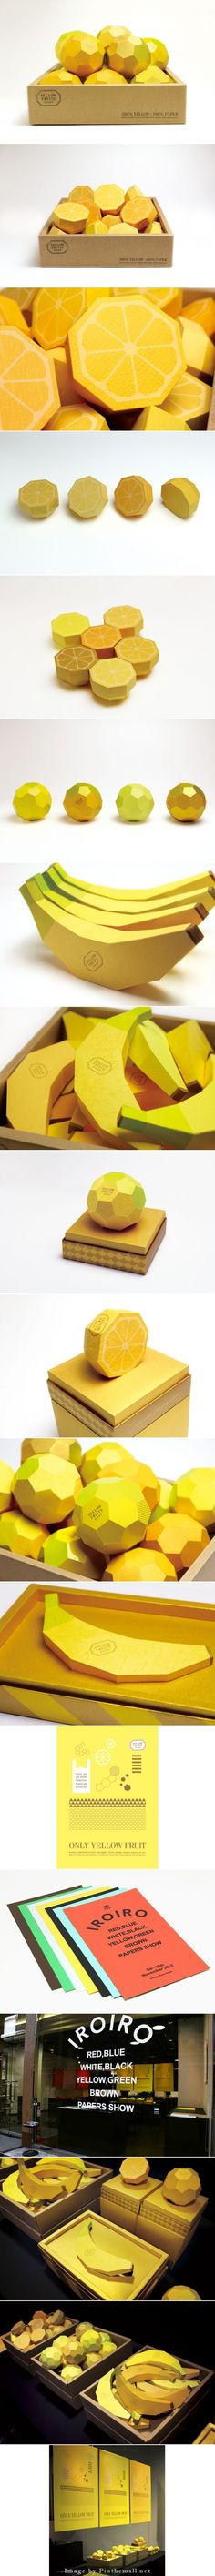 Some really cool yellow fruit #packaging #designs that people really like for the Irioro papers show by Safari Design curated by Packaging Diva PD -created via http://safari-design.com/iroiro/